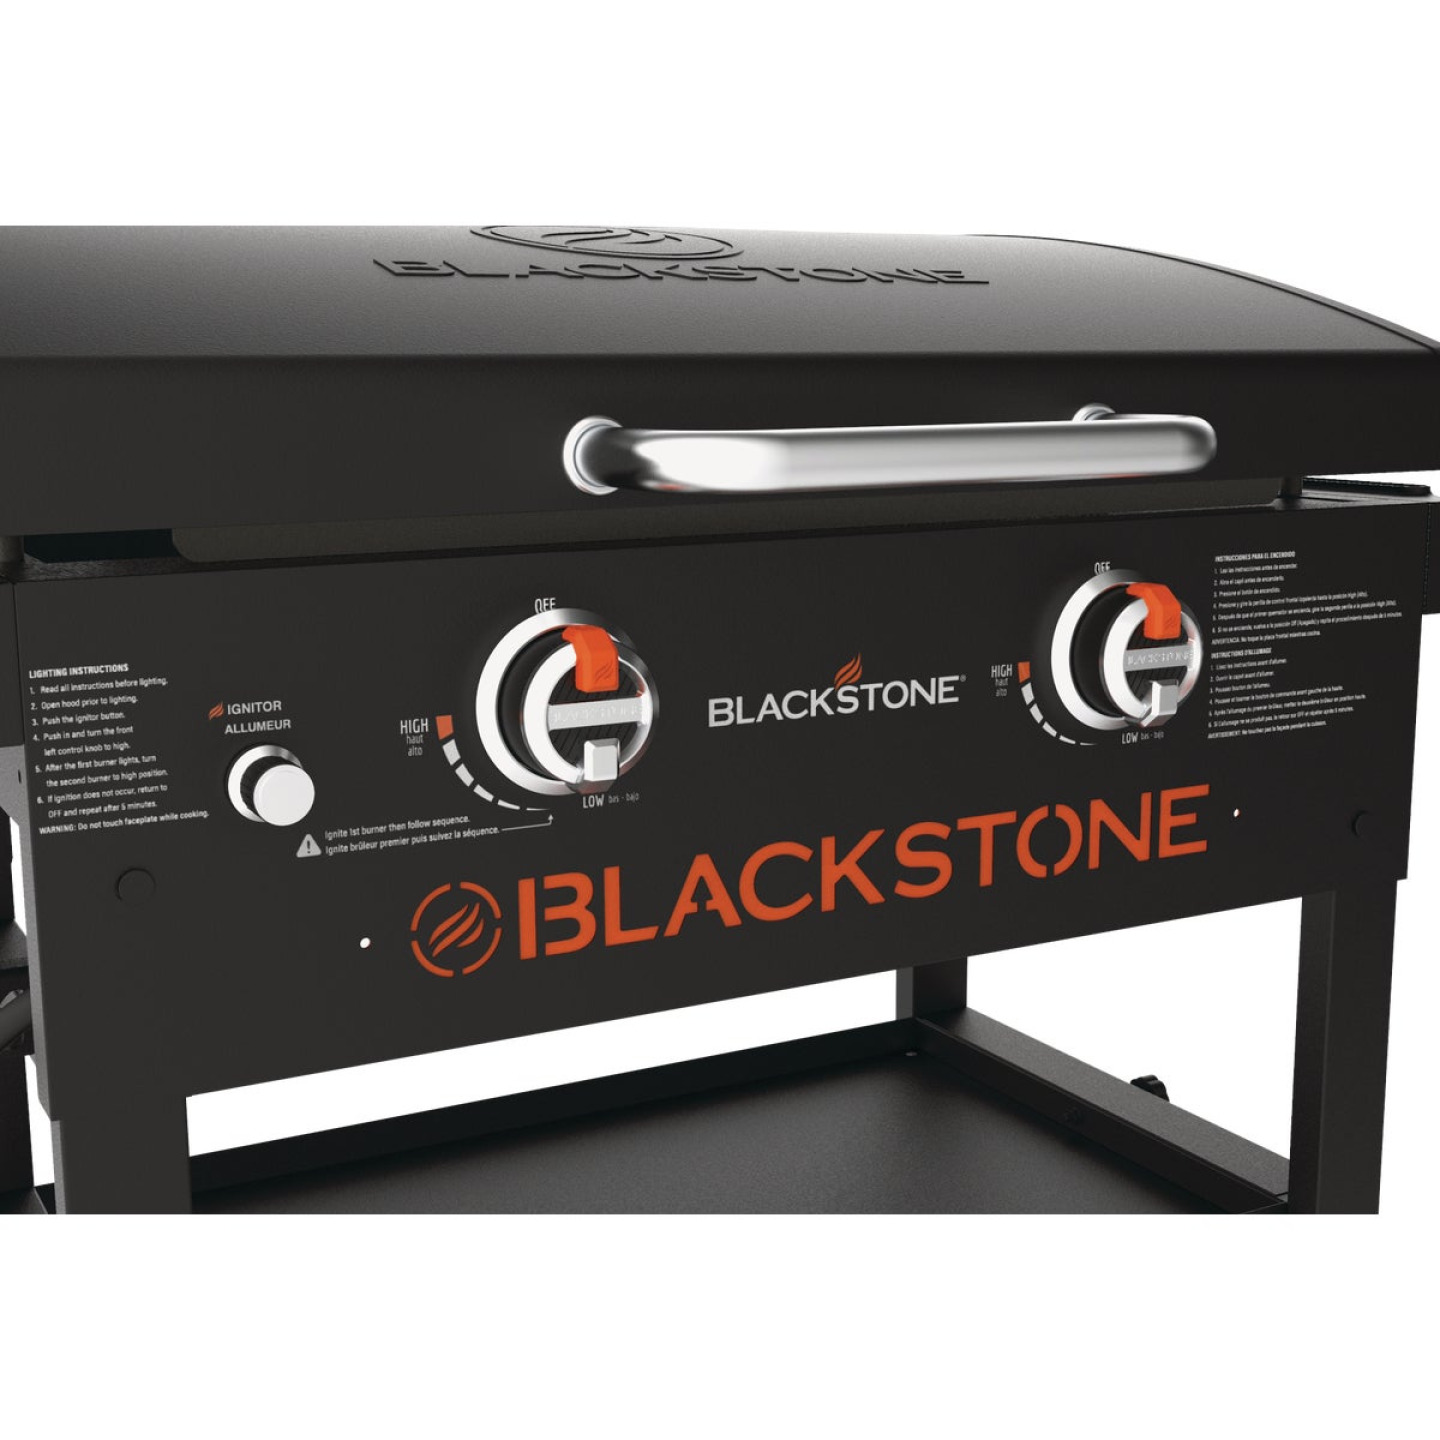 Blackstone Original 2-Burner Black 17,000-BTU LP Gas Griddle Image 3